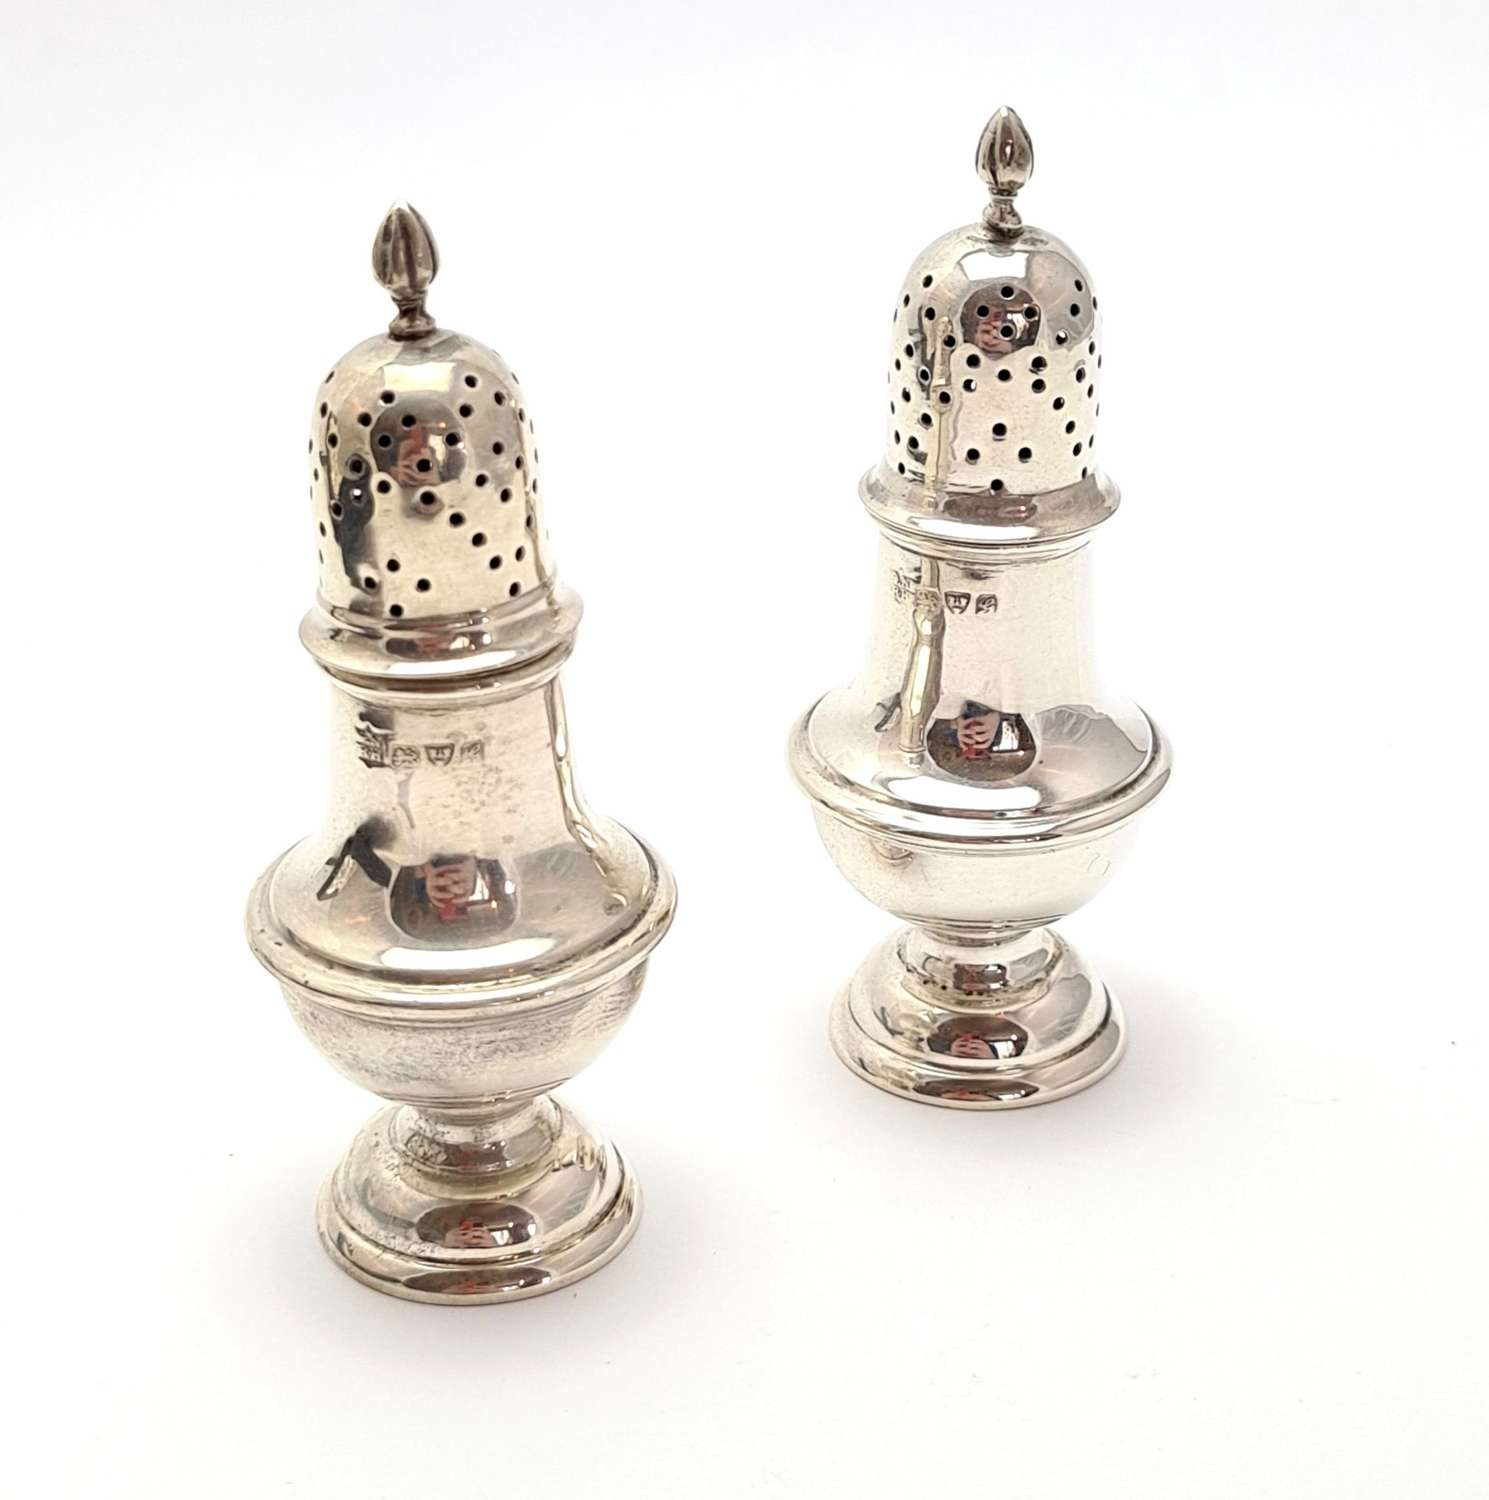 Pair of Cased Silver Pepper Shakers